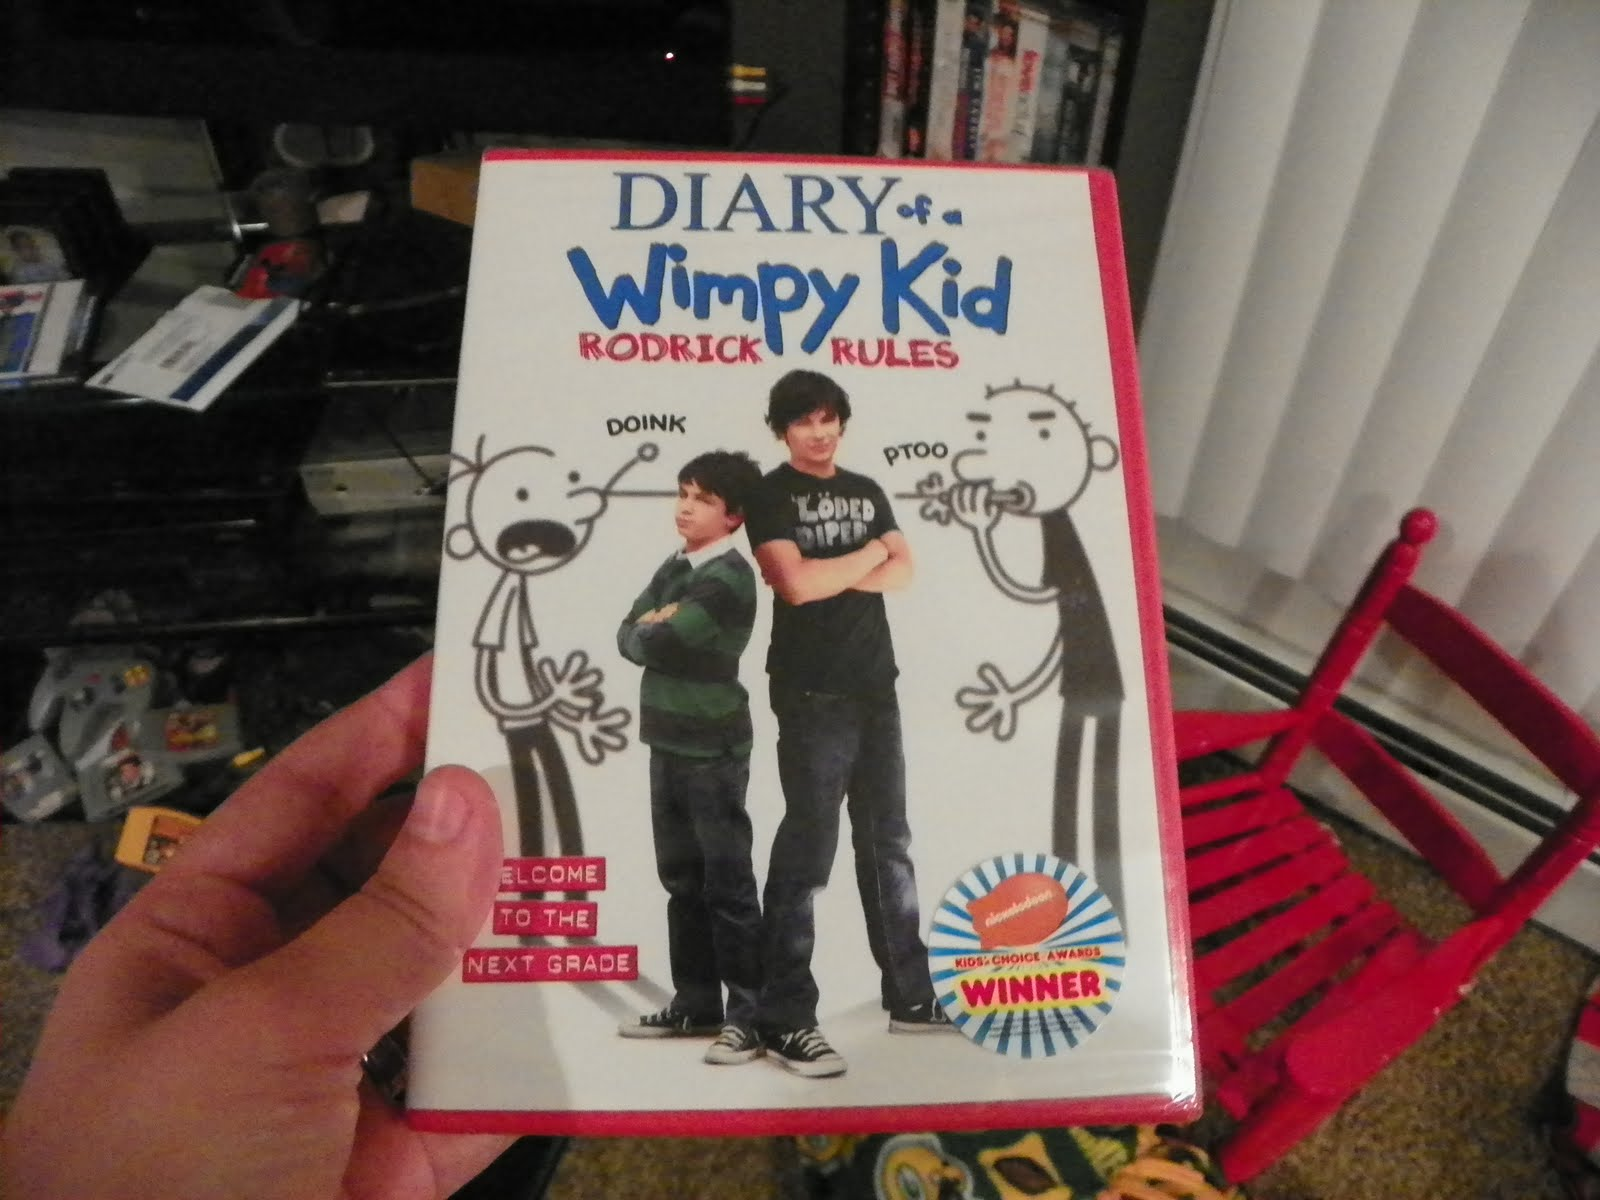 The Review Stew Watching Diary Of A Wimpy Kid Rodrick Rules While Snacking On M Ms And Orville Redenbacher Pop Up Bowls